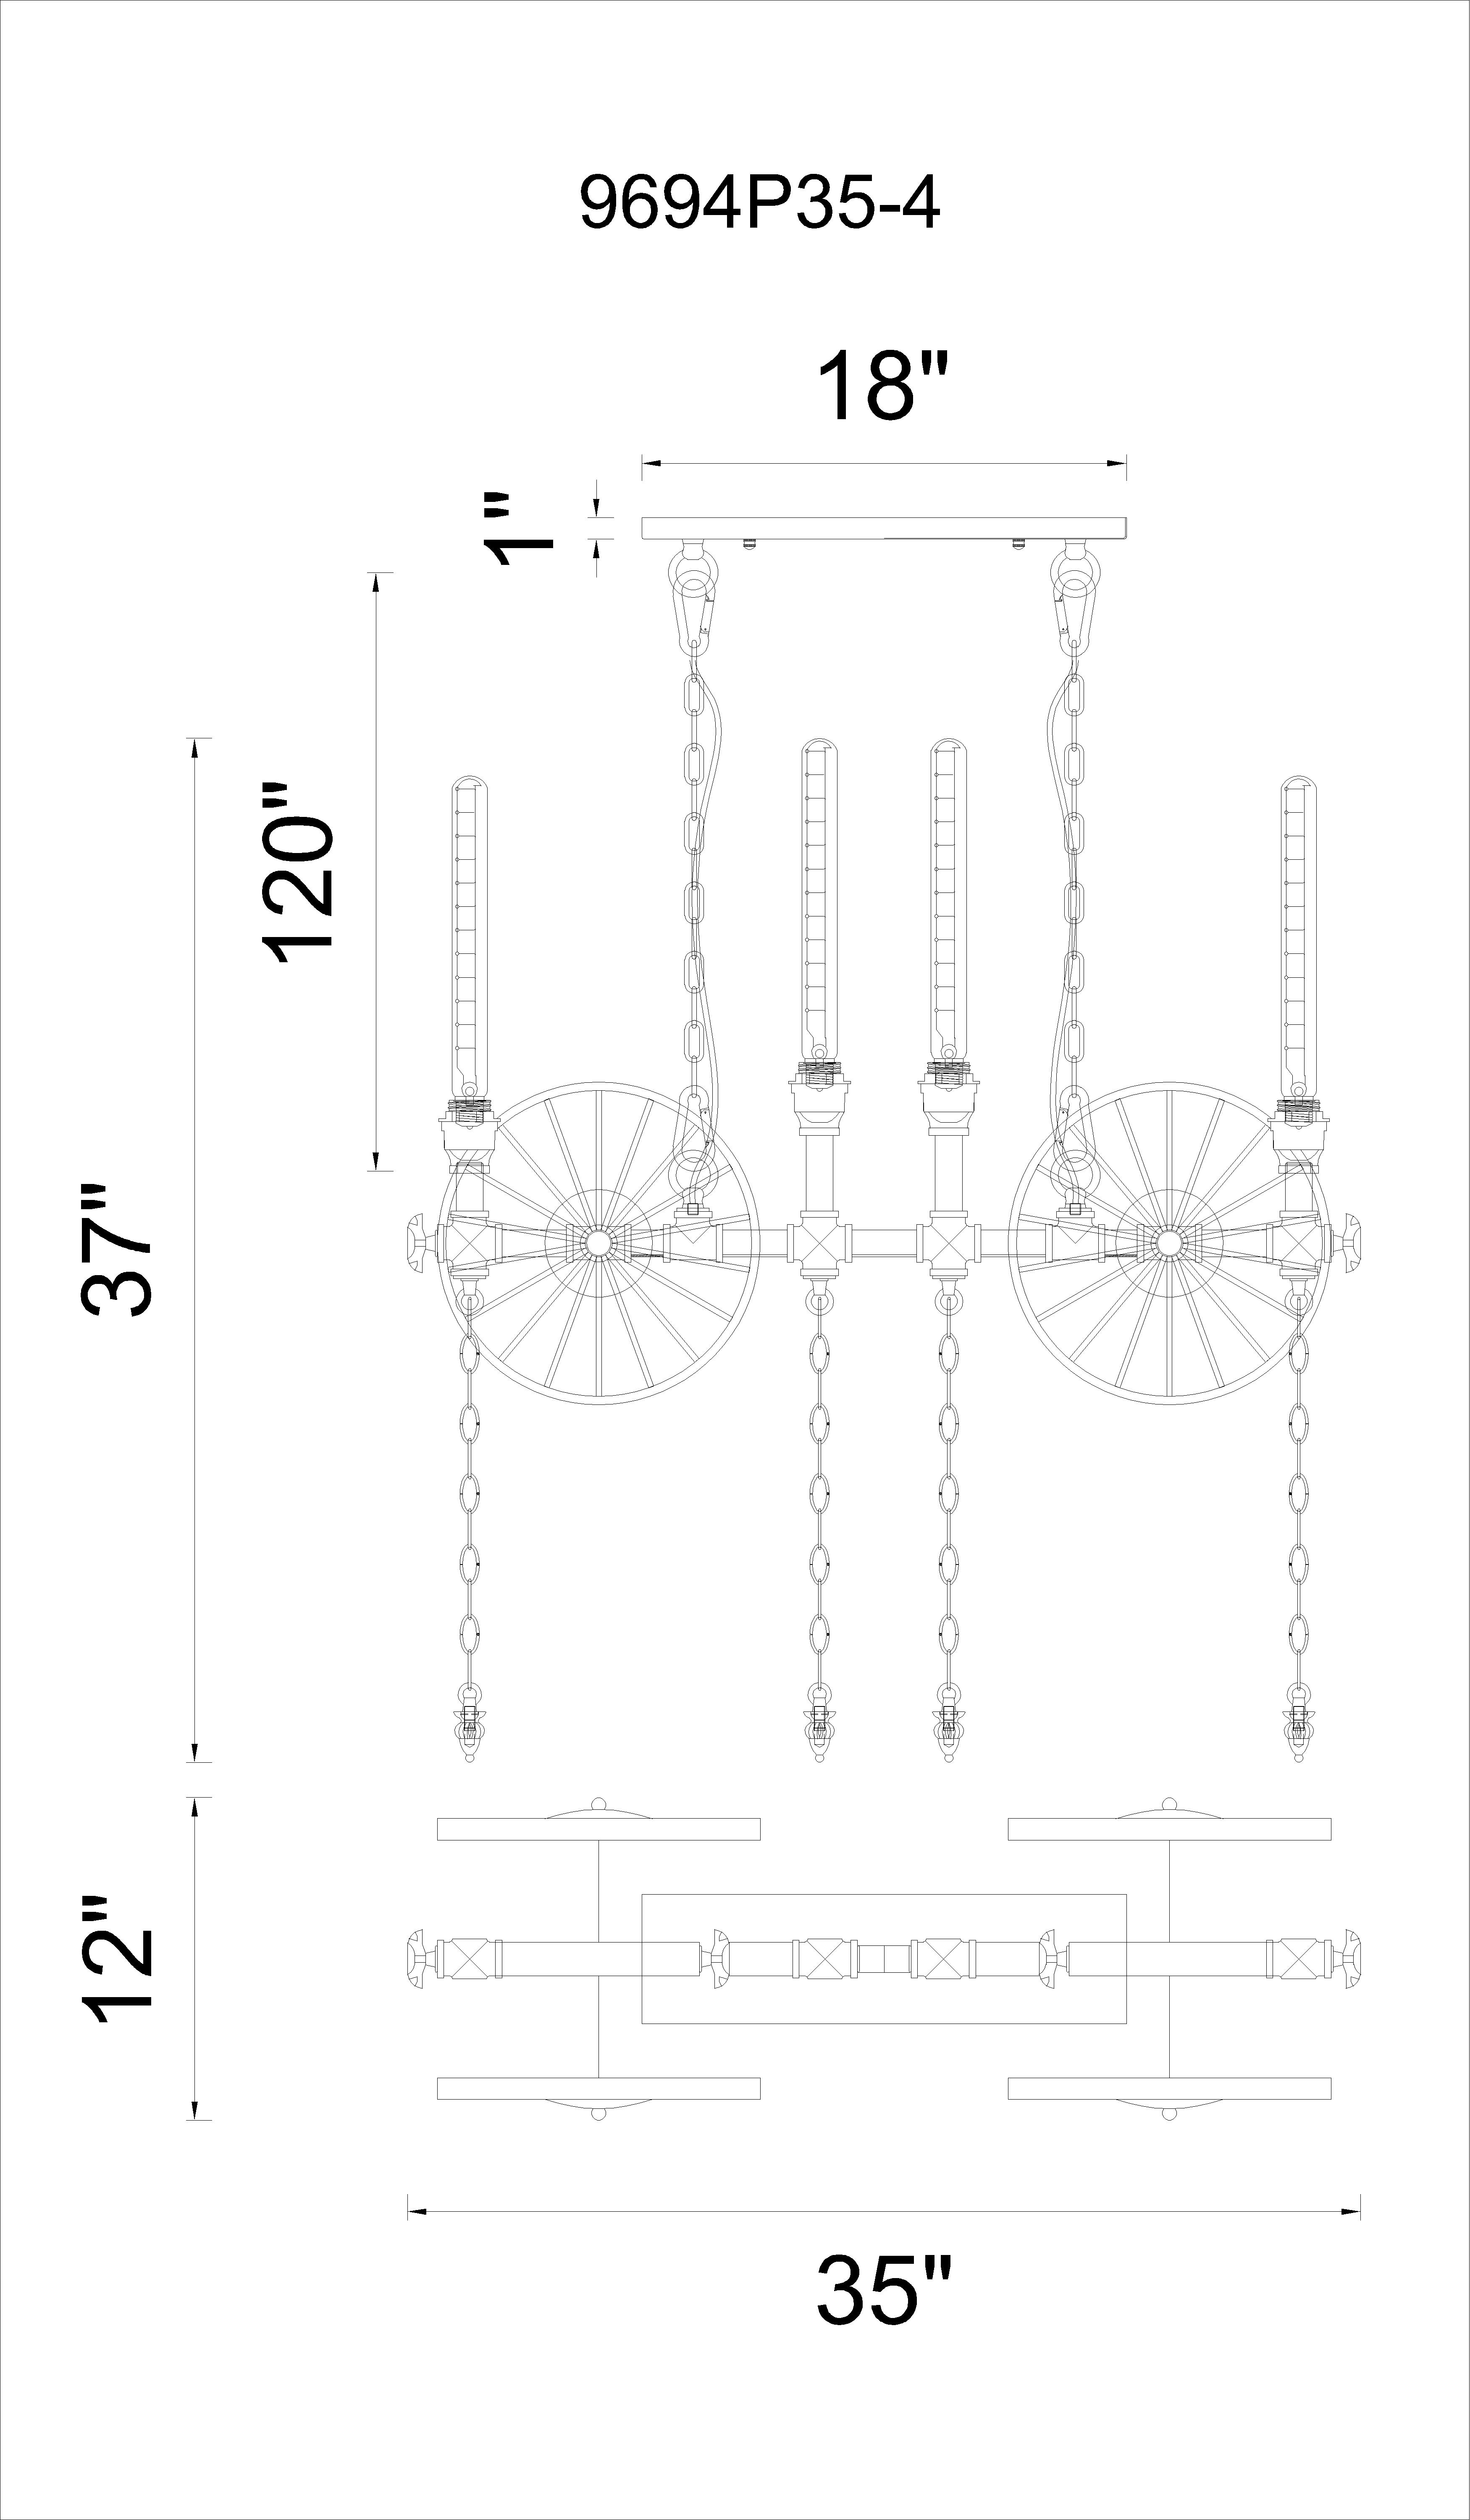 CWI Lighting Rio 4 Light Up Chandelier With Gray Finish Model: 9694P35-4-187 Line Drawing